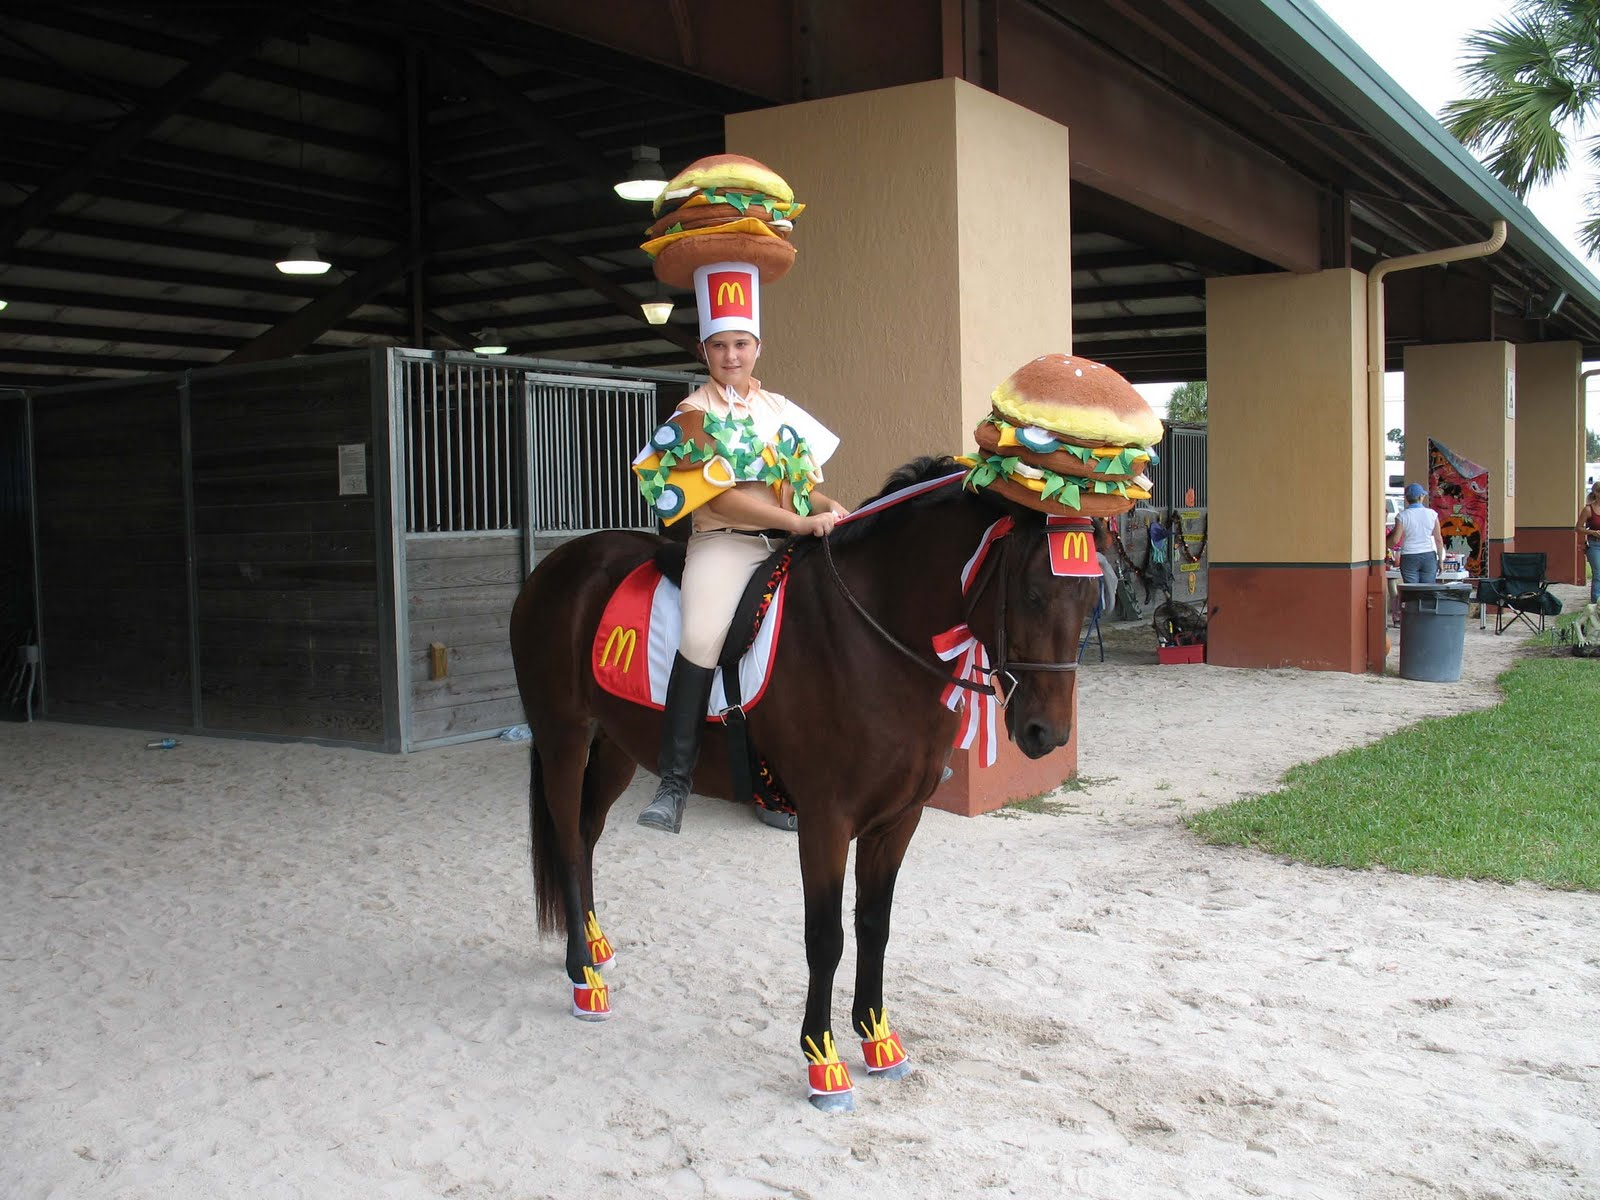 Top 10 Amazing Horse and Rider Costume Ideas |Horse Fancy Dress Costumes